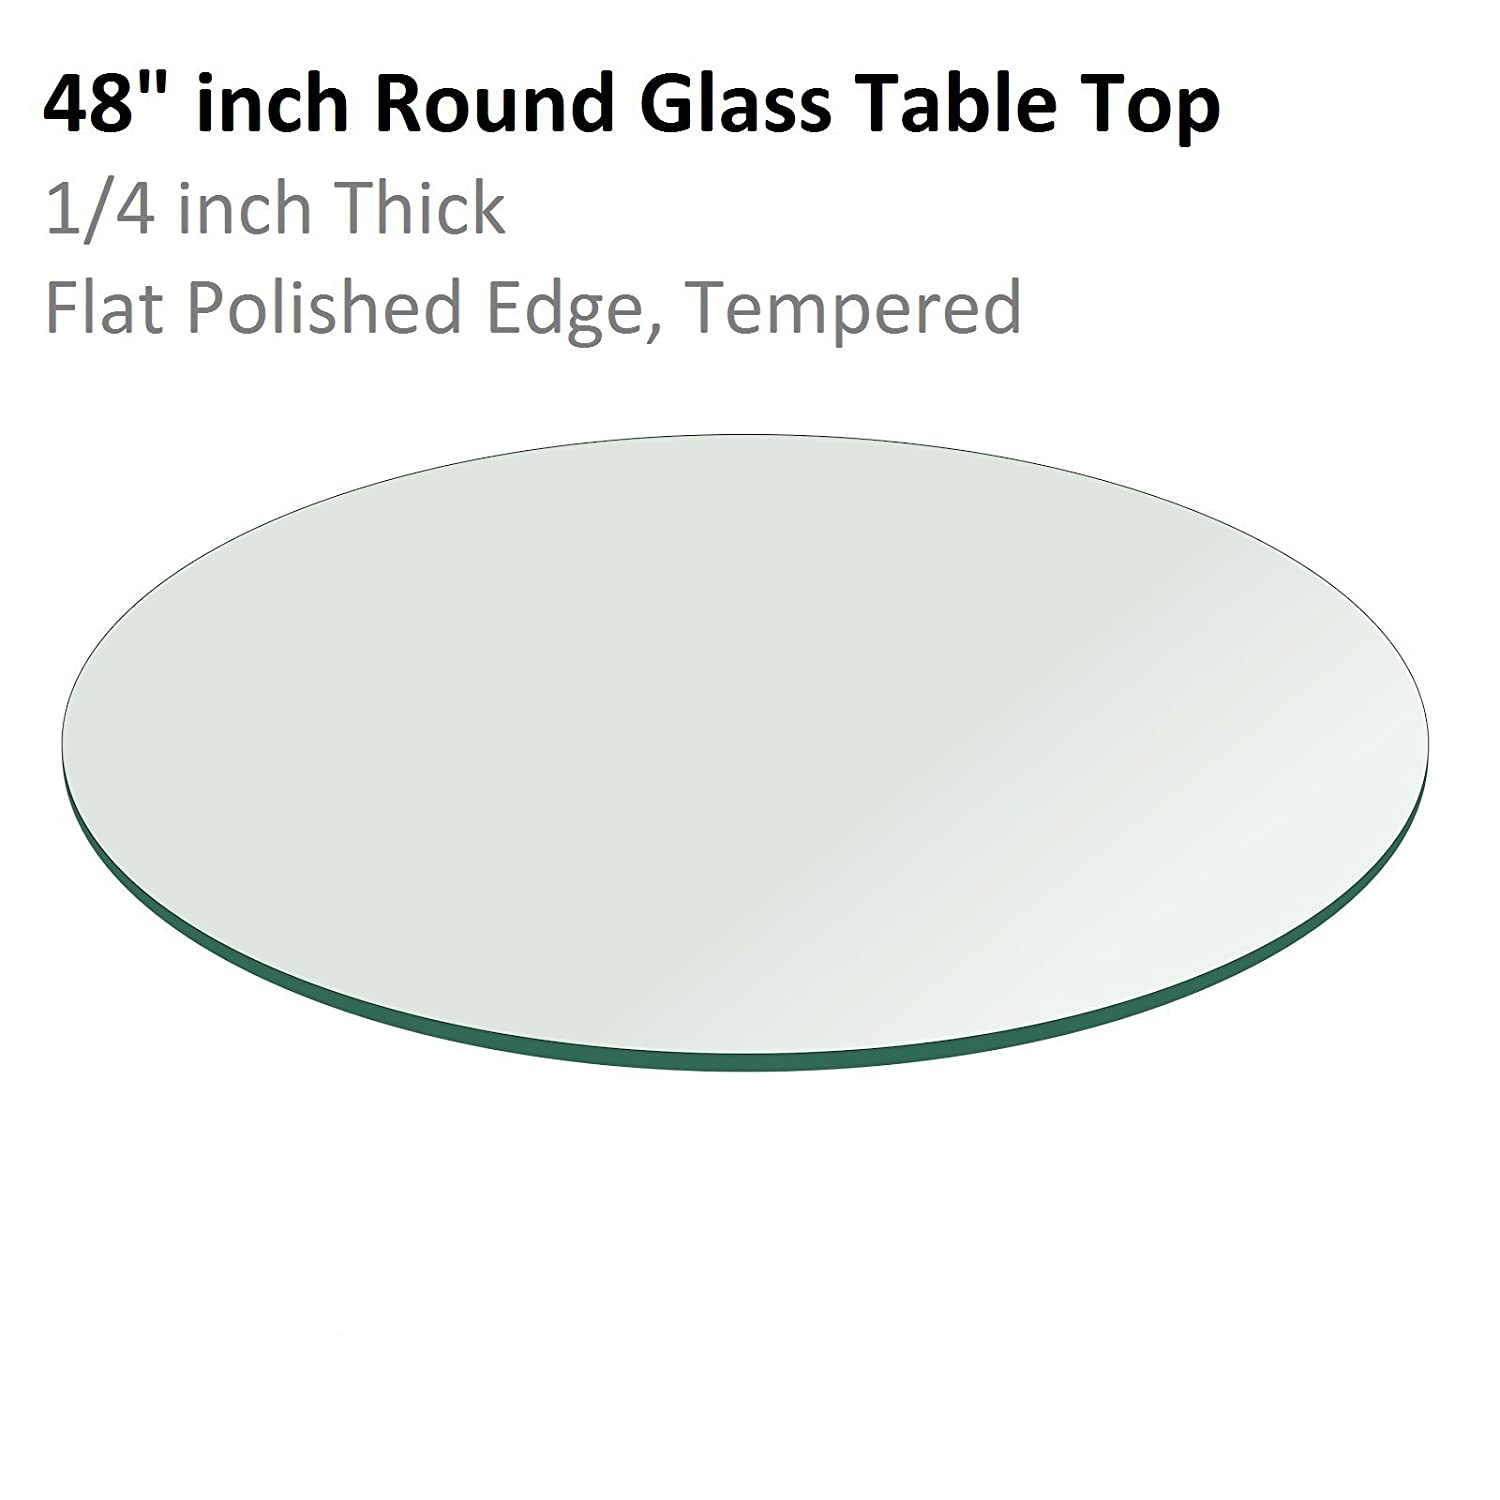 48 outdoor glass table top replacement - Amazon Com Fab Glass And Mirror 1 4 Thick Flat Polish Tempered Round Glass Table Top 38 Kitchen Dining